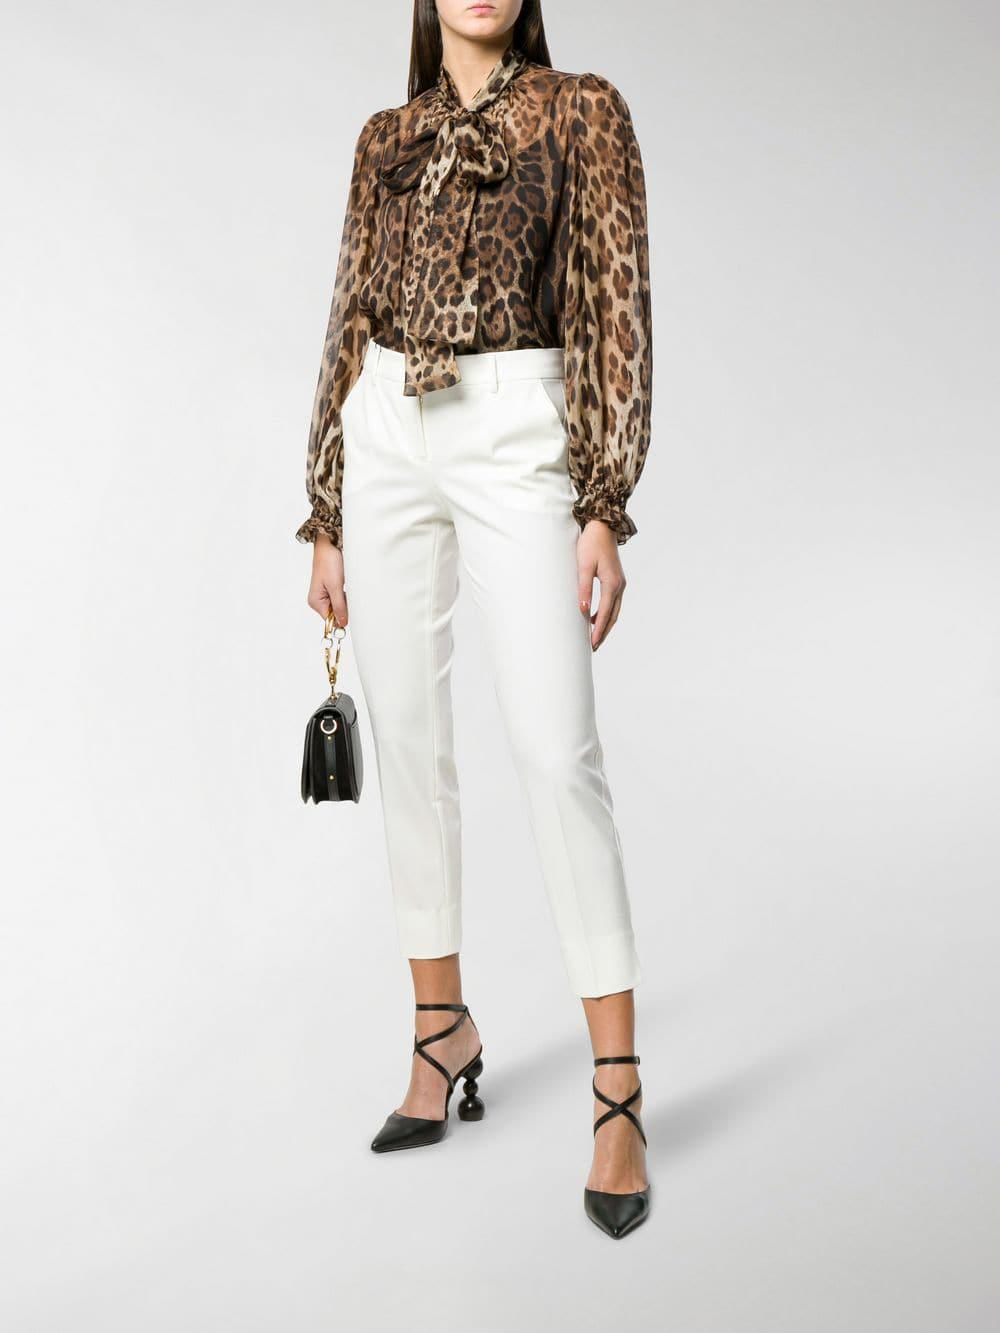 be168ac38d42 Lyst - Dolce & Gabbana Leopard-print Pussy Bow Blouse in Brown